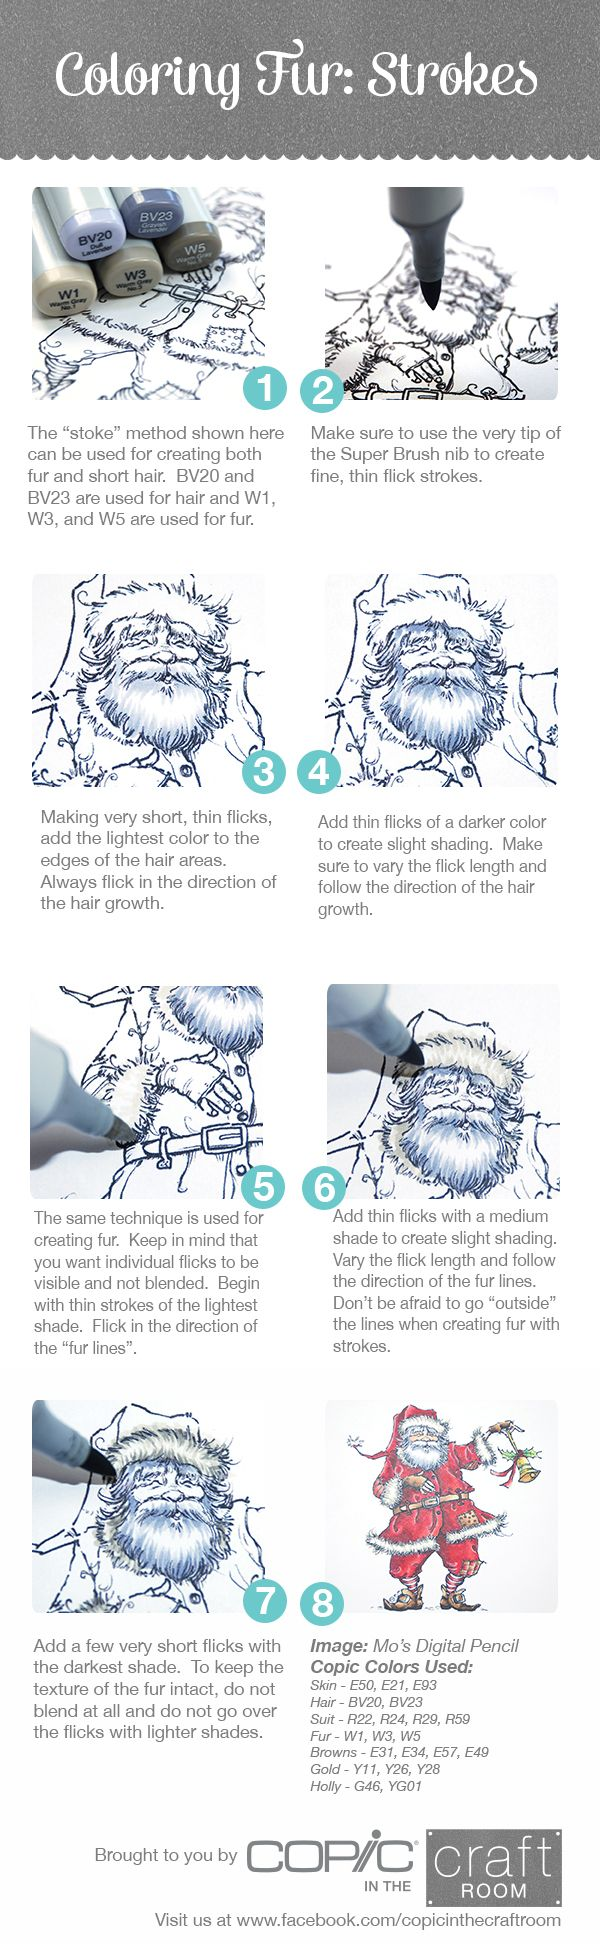 Brought to you by Copic in the Craft Room.  Learn how to create fur with your markers!  Quick and easy - works for short hair and beards too!